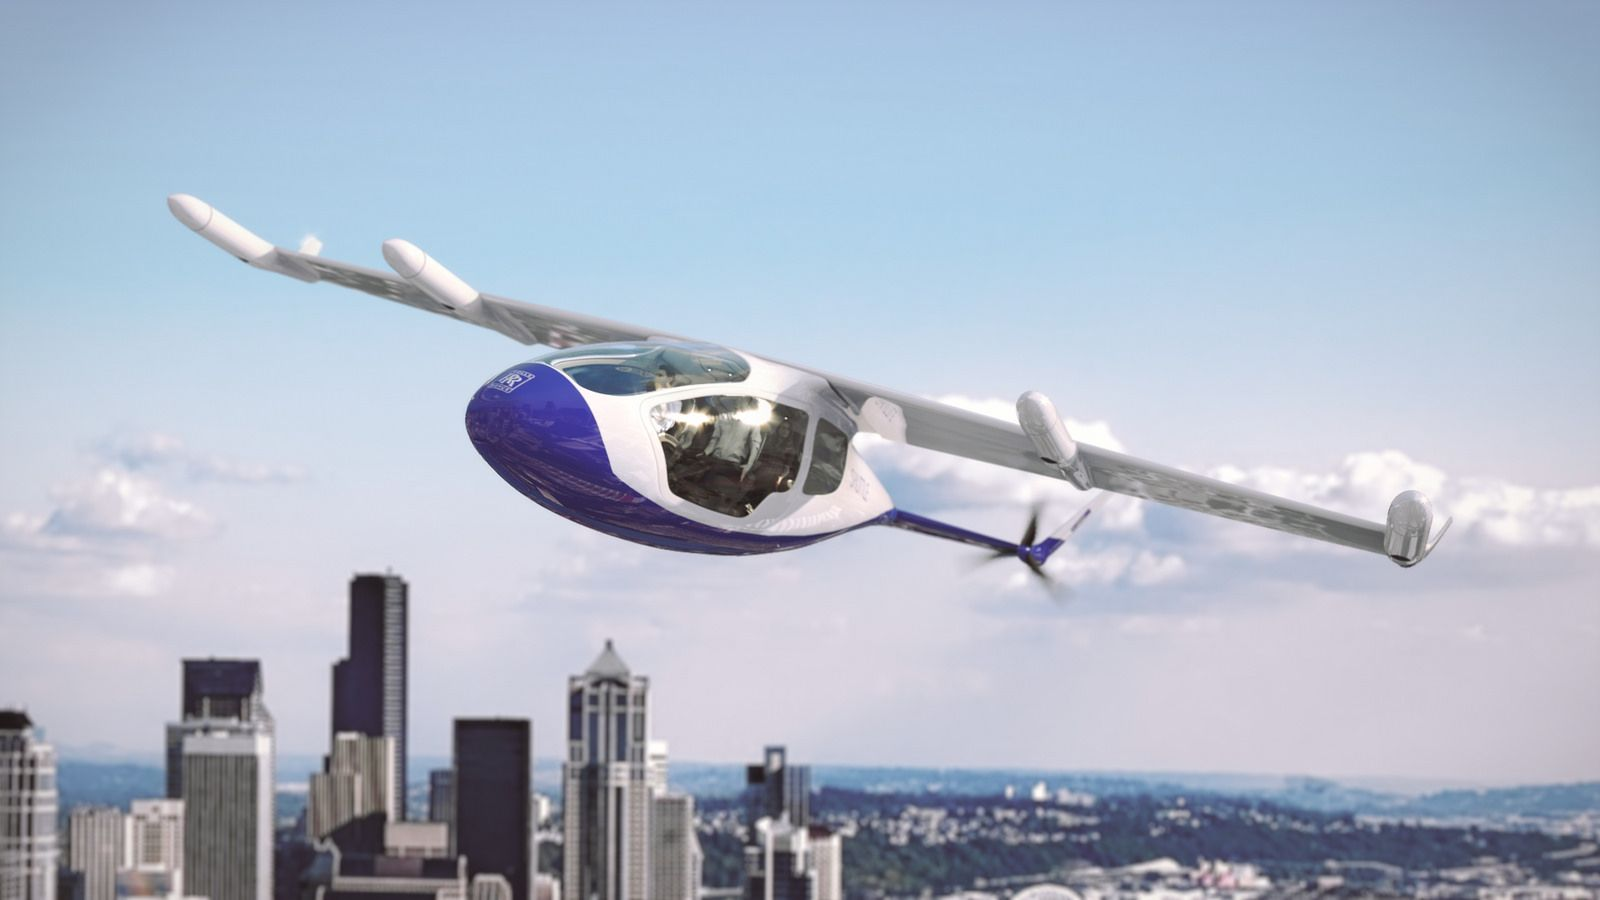 Vertical take-off technology could bring 'flying taxis' to the skies